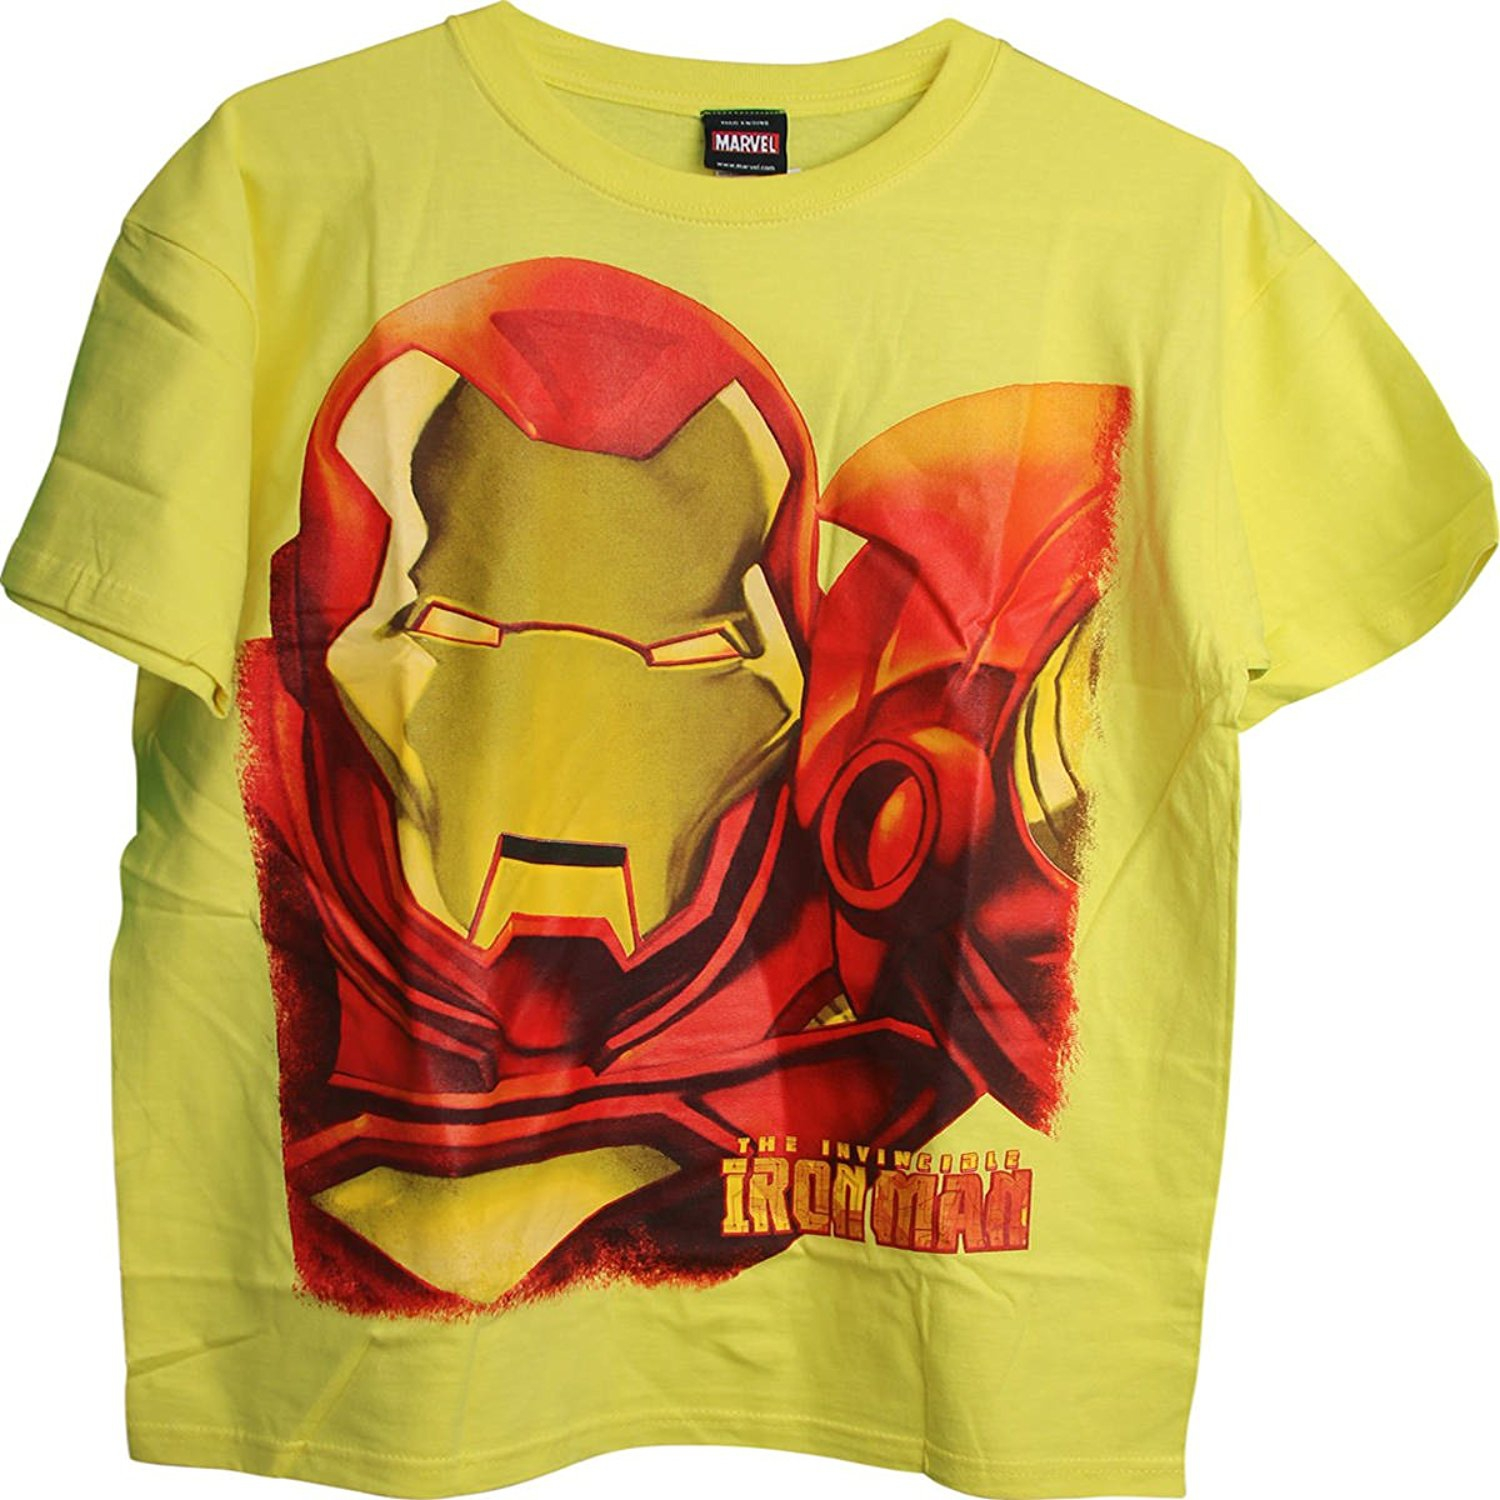 Marvel The Invincible Iron Man Huge Graphic Adult T-Shirt